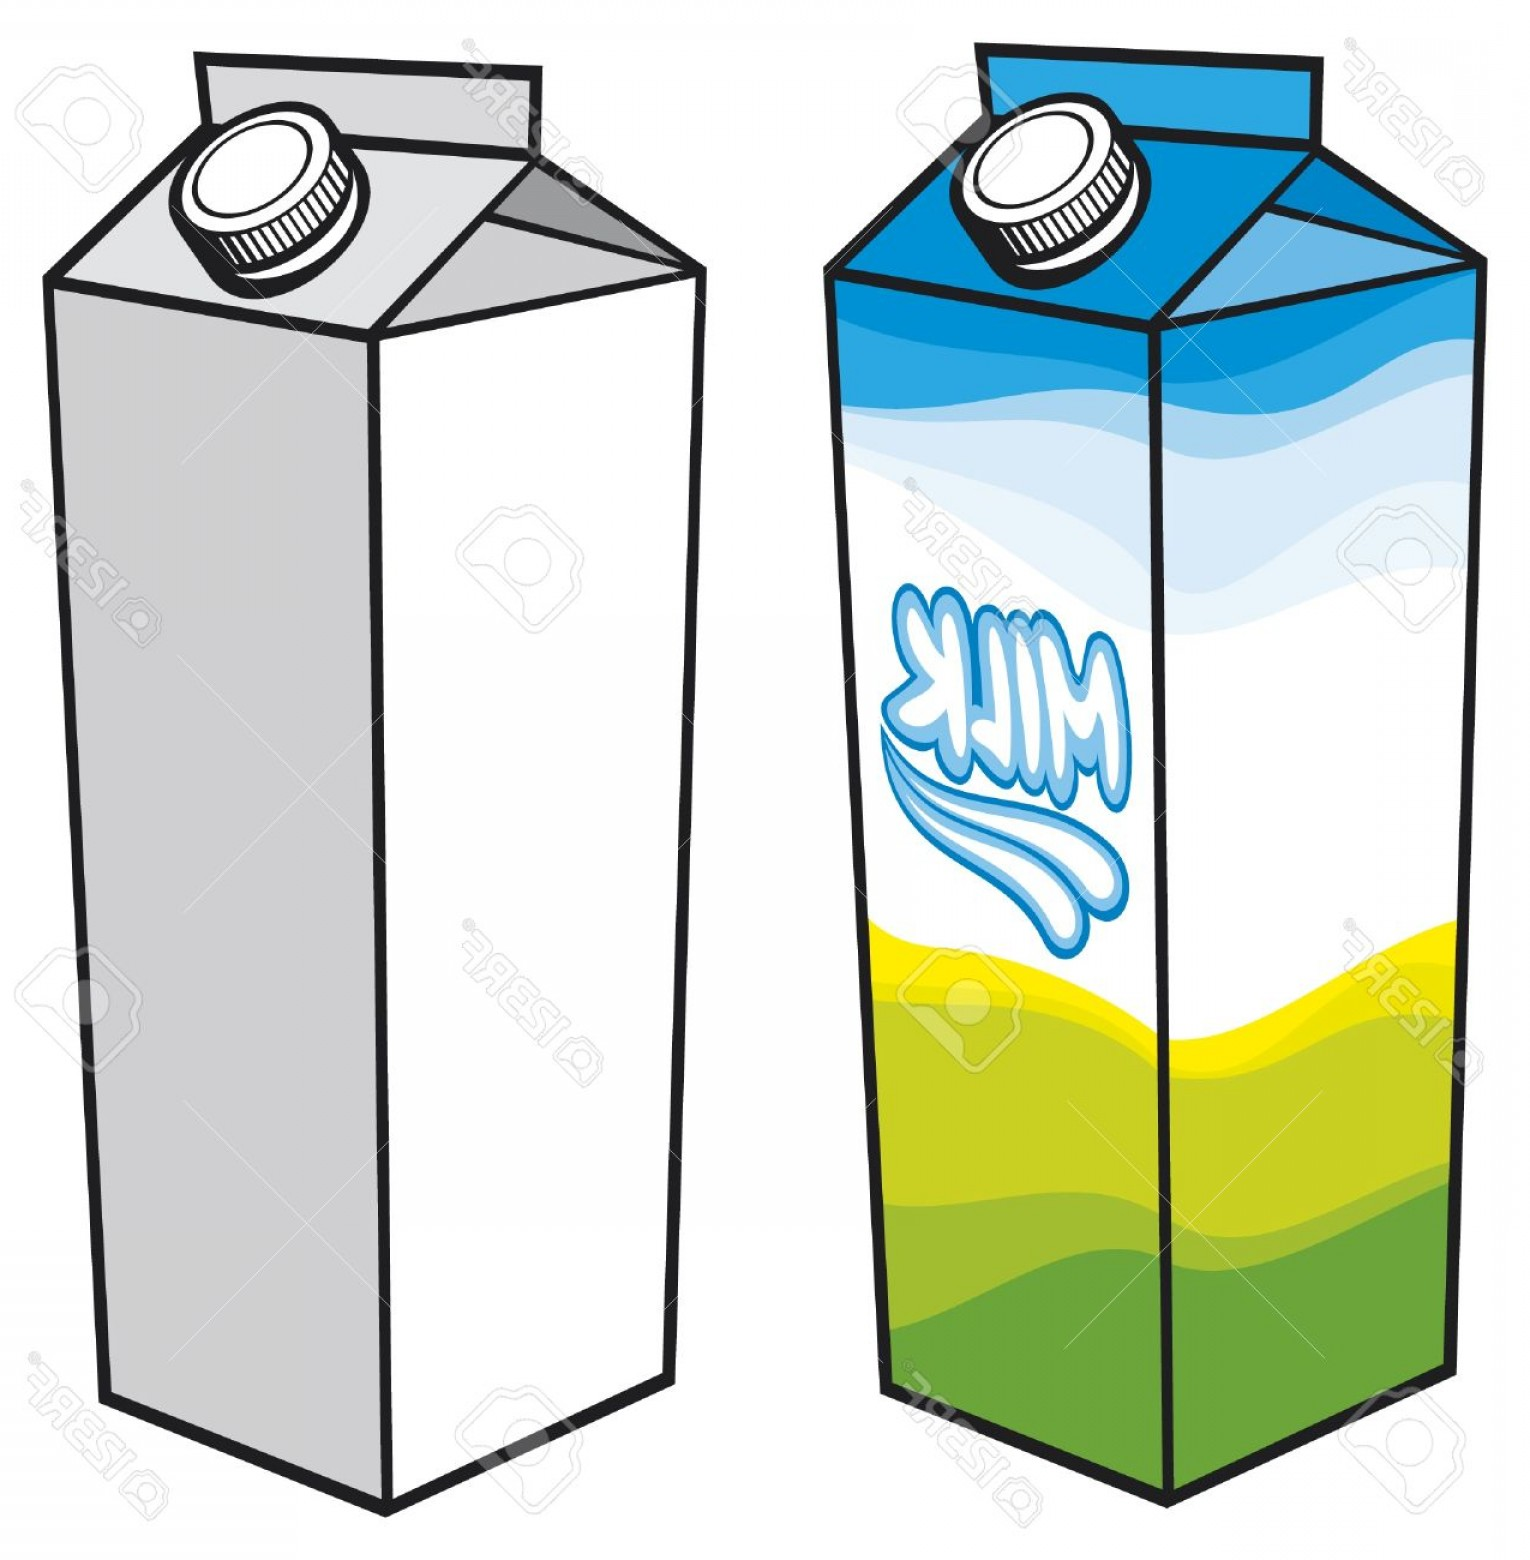 Vector Milk Container: Photomilk Carton Milk Carton With Screw Cap Carton Box Milk Box Milk Carton Packages Milk Pack